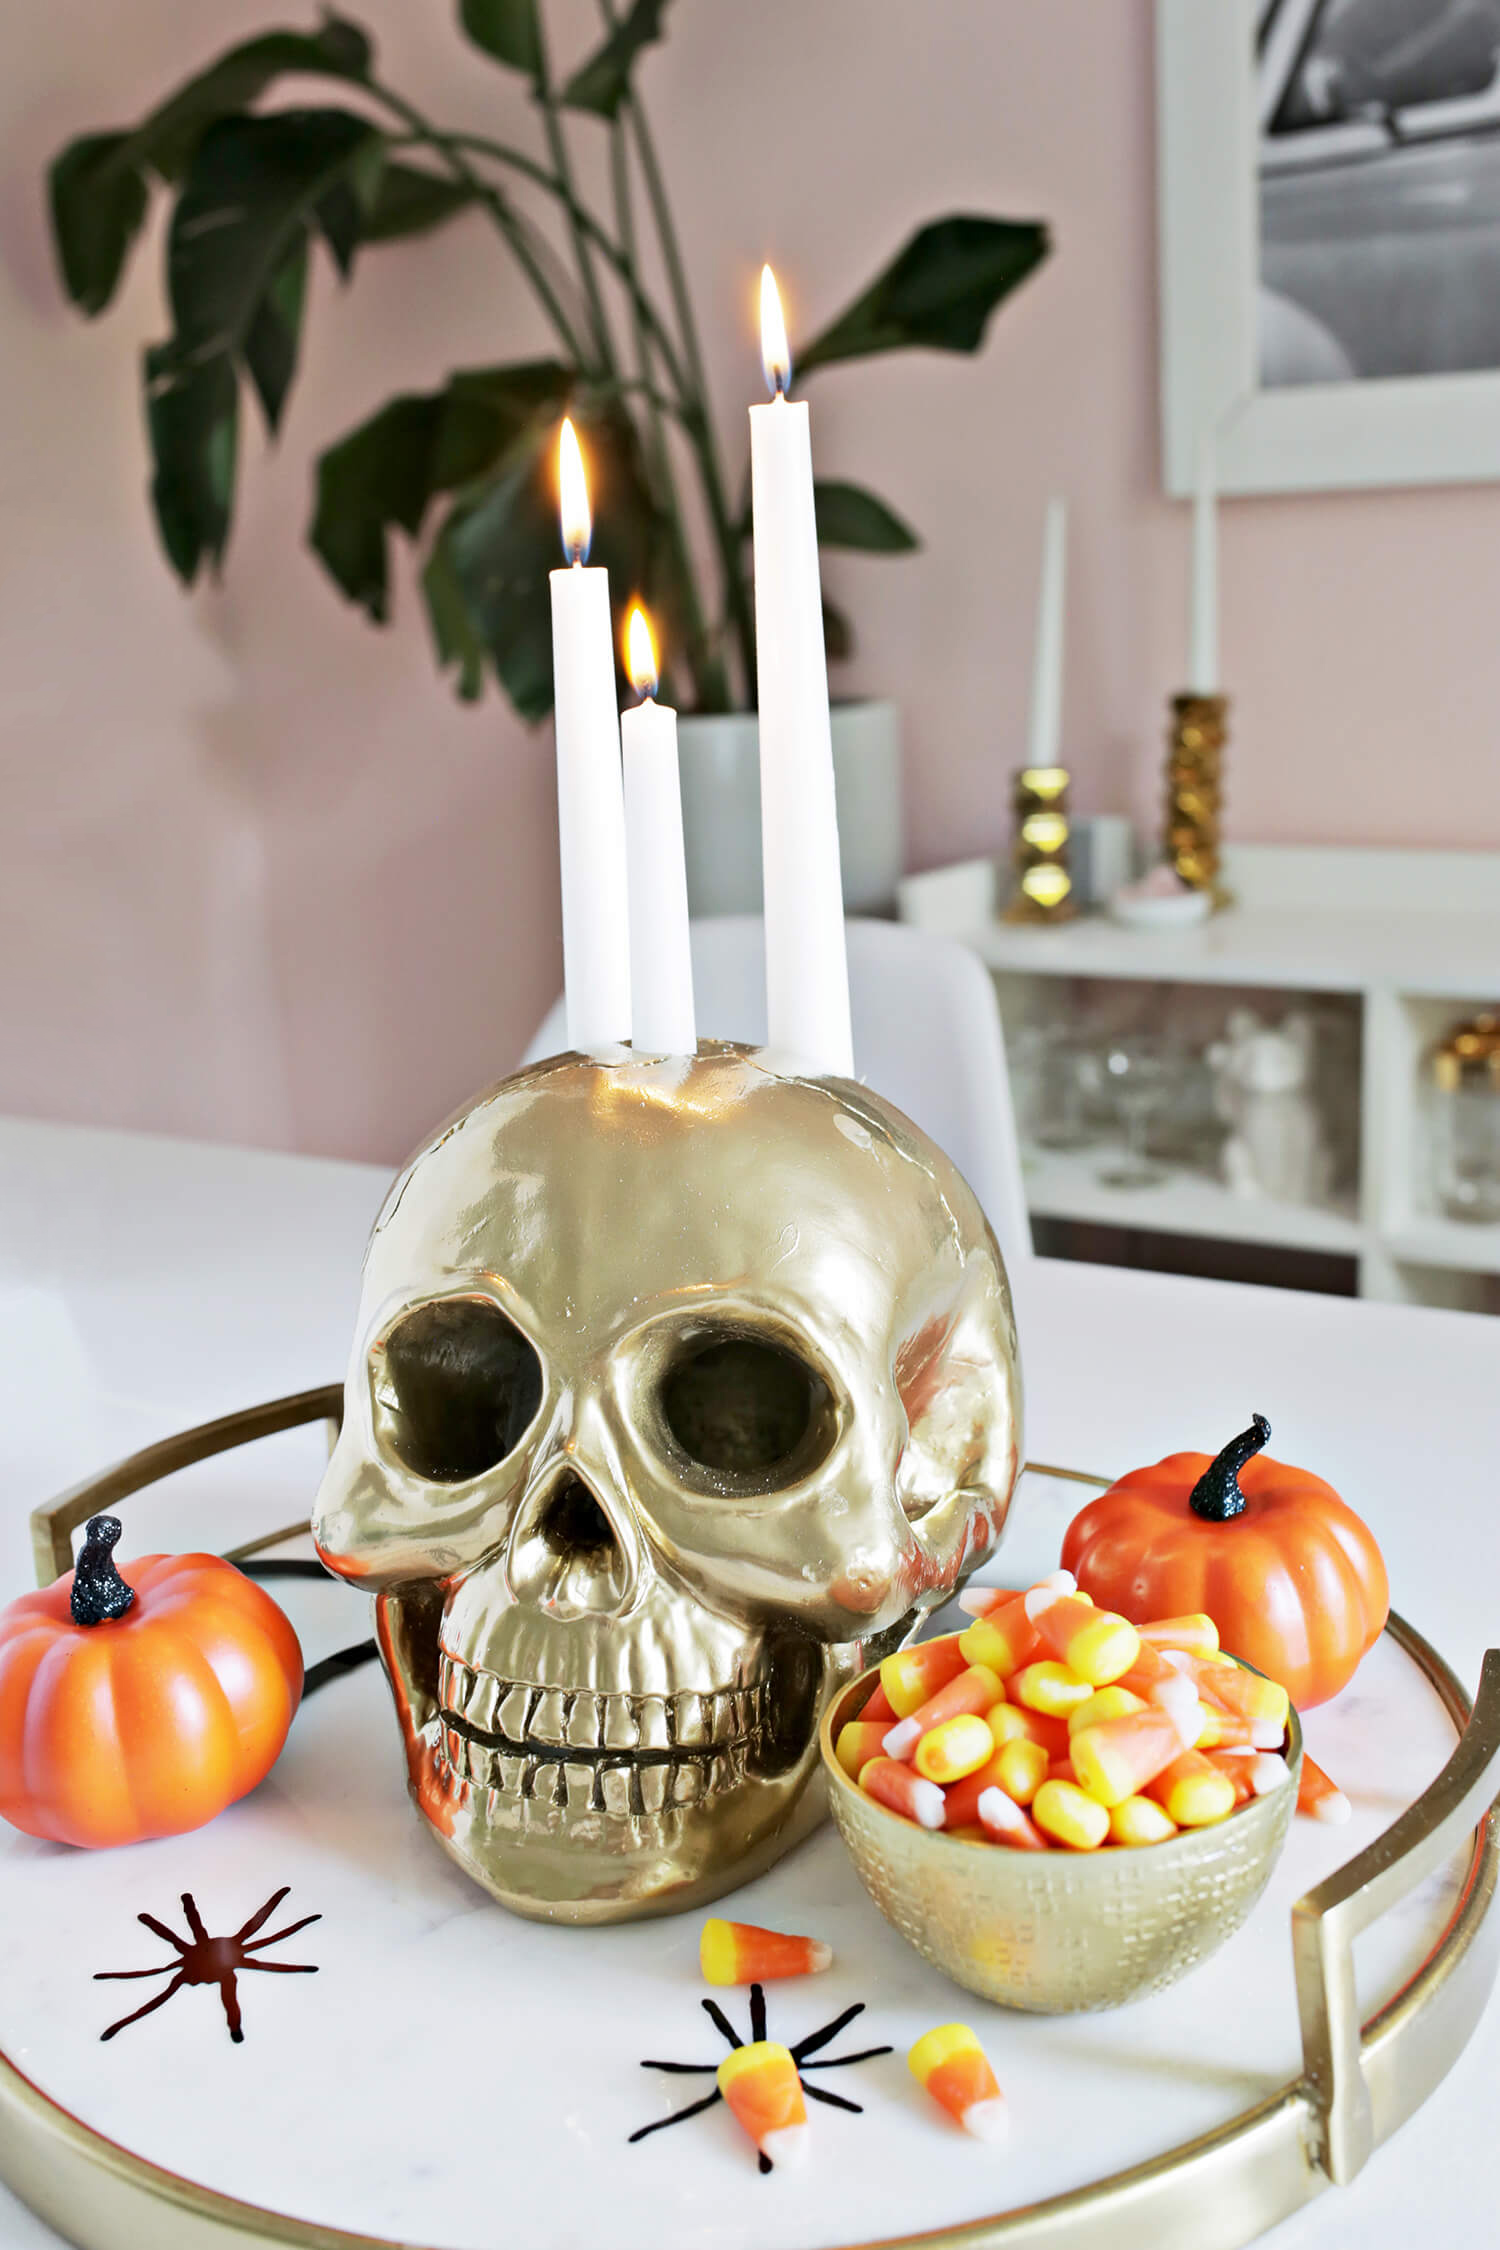 15 Eerie DIY Halloween Decor Ideas You Can Easily Craft